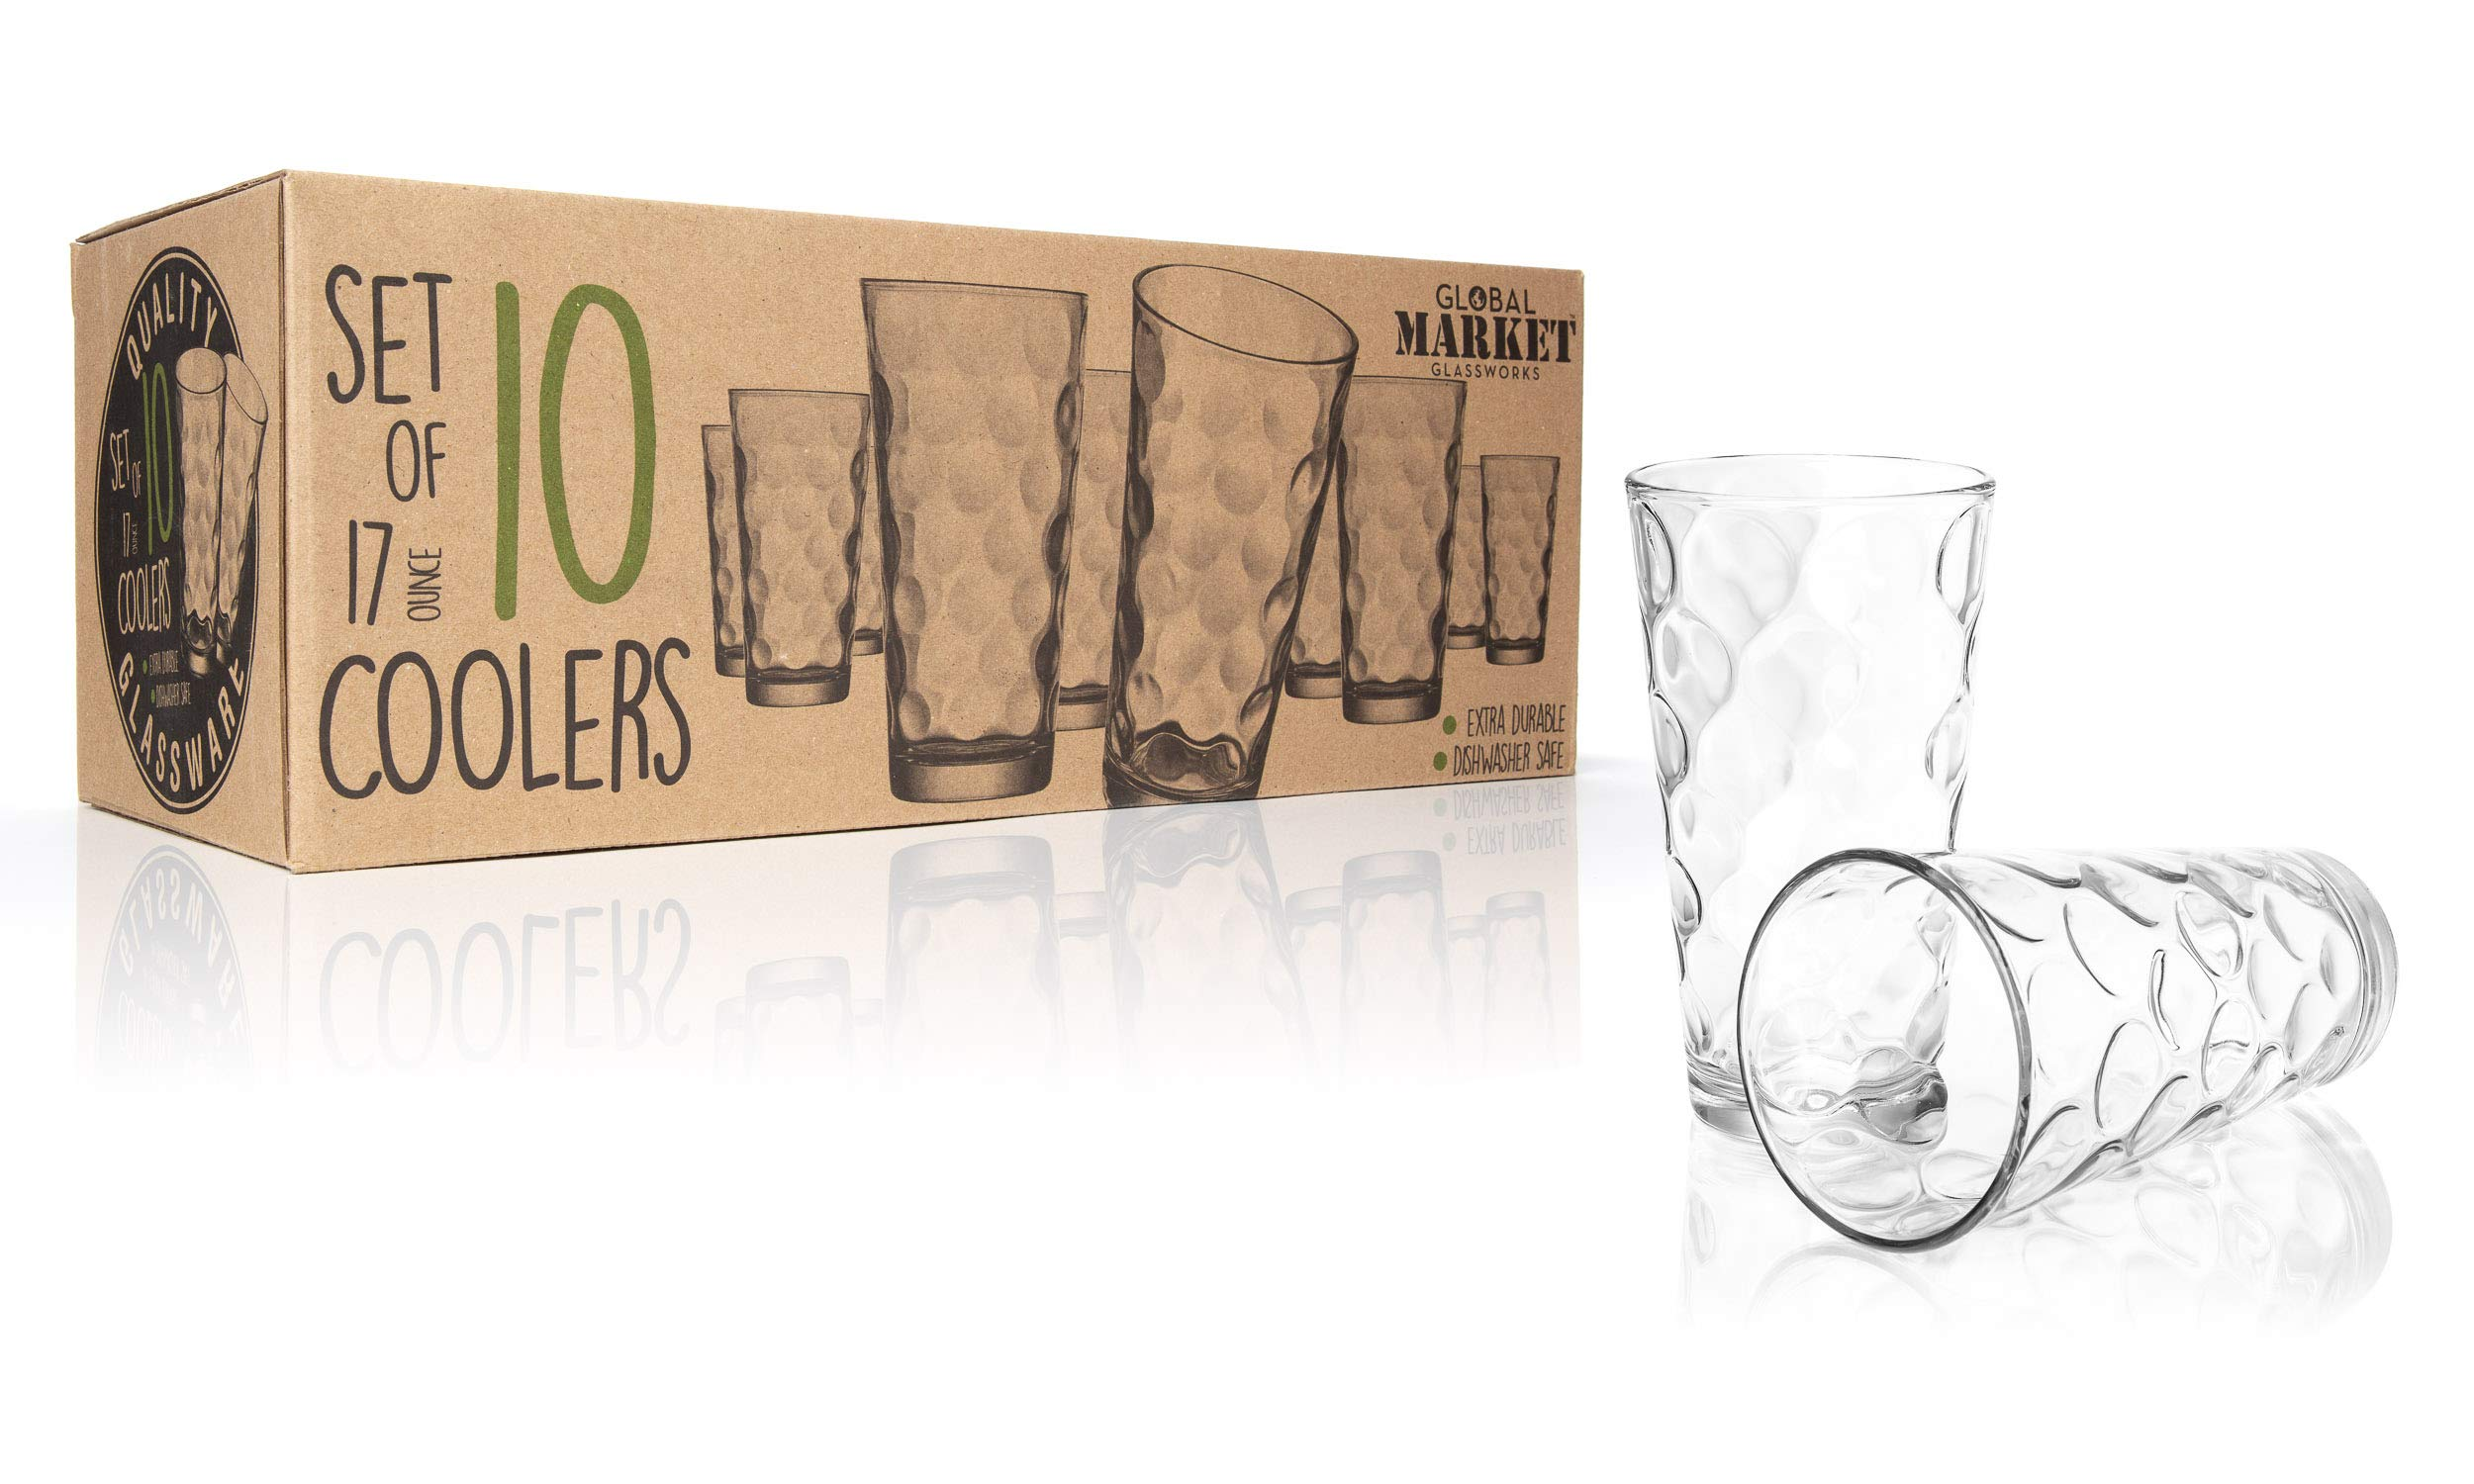 TableSetter 10 Drinking Glasses - A set of 10 Clear water glasses, Solar Cooler Glass 17oz Drinkware Set by Global Market Glassworks